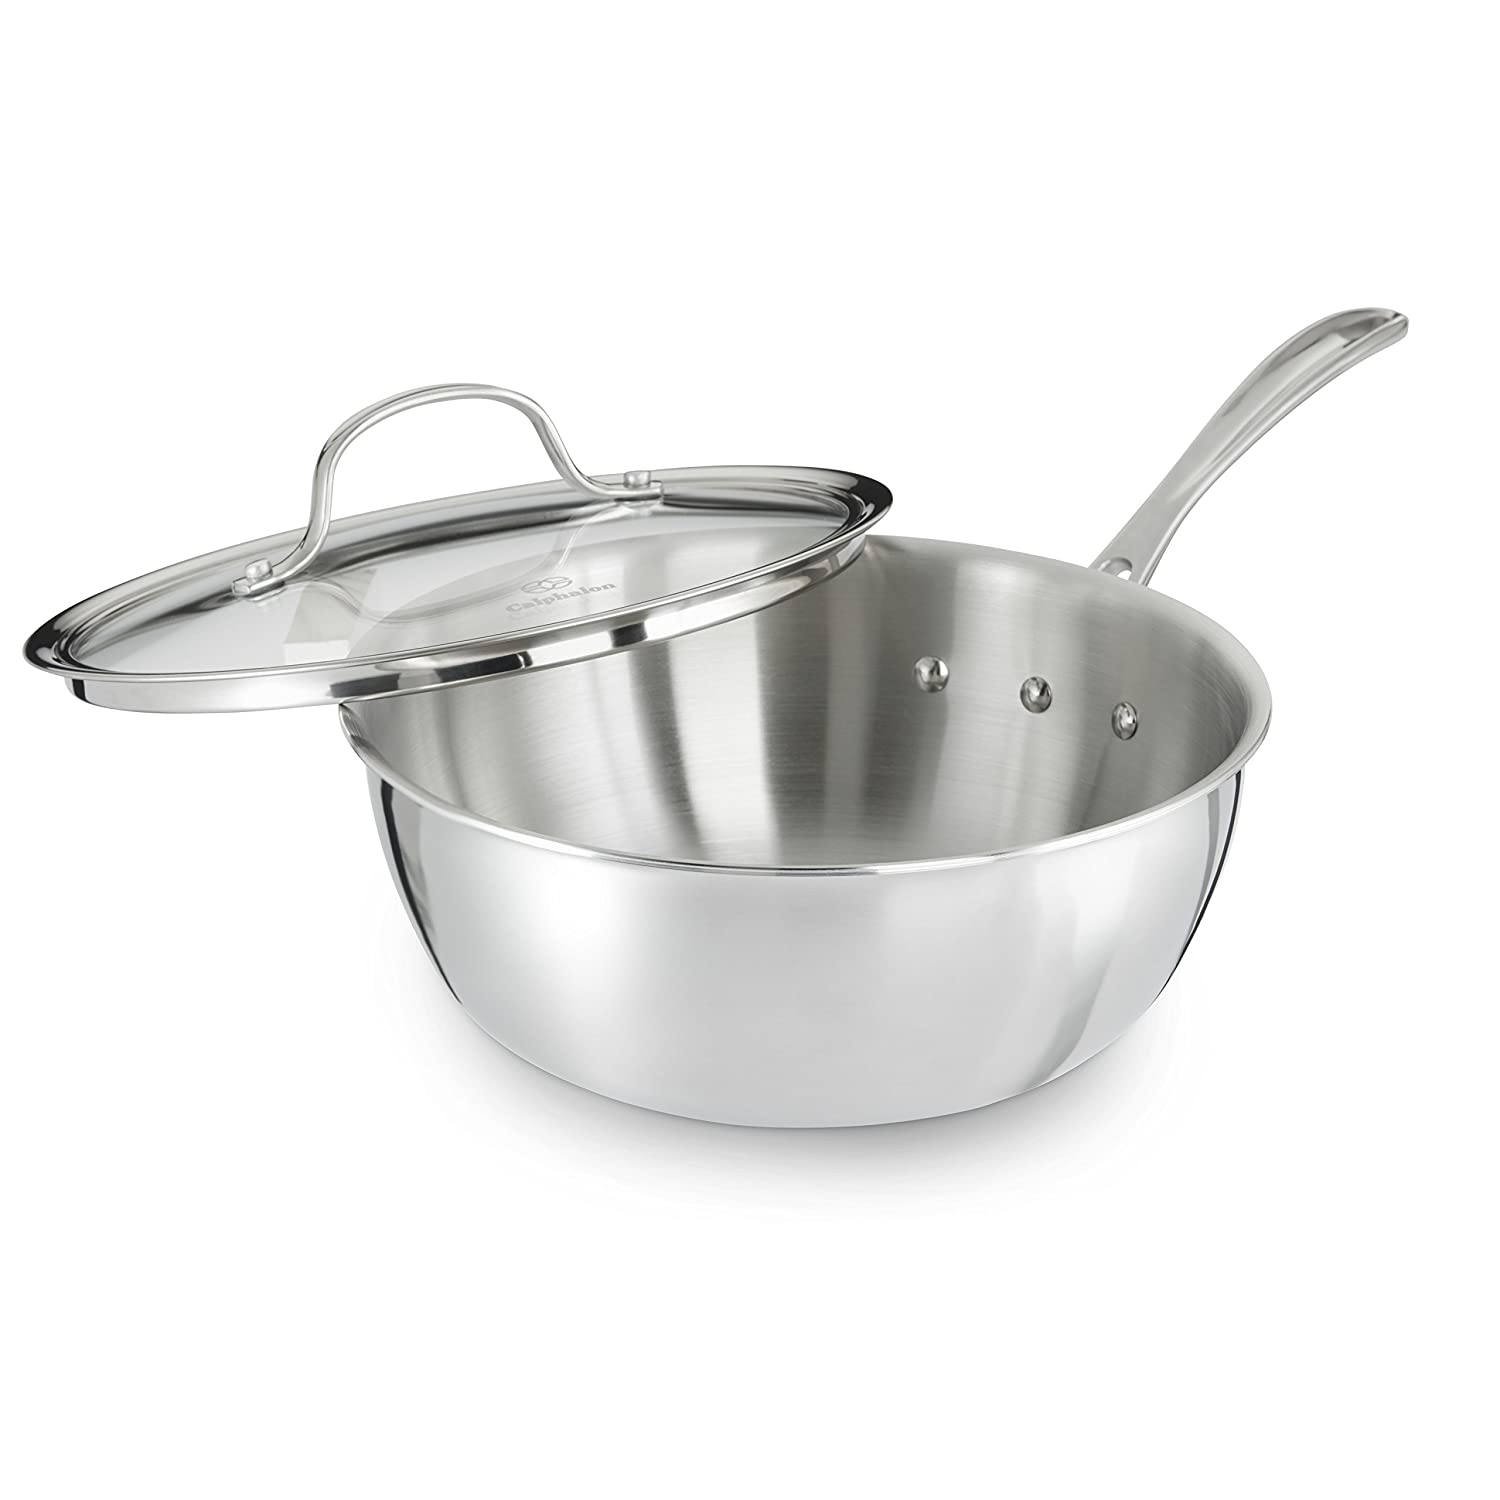 Calphalon Tri-Ply Stainless Steel Cookware, Chef's Pan, 3-quart